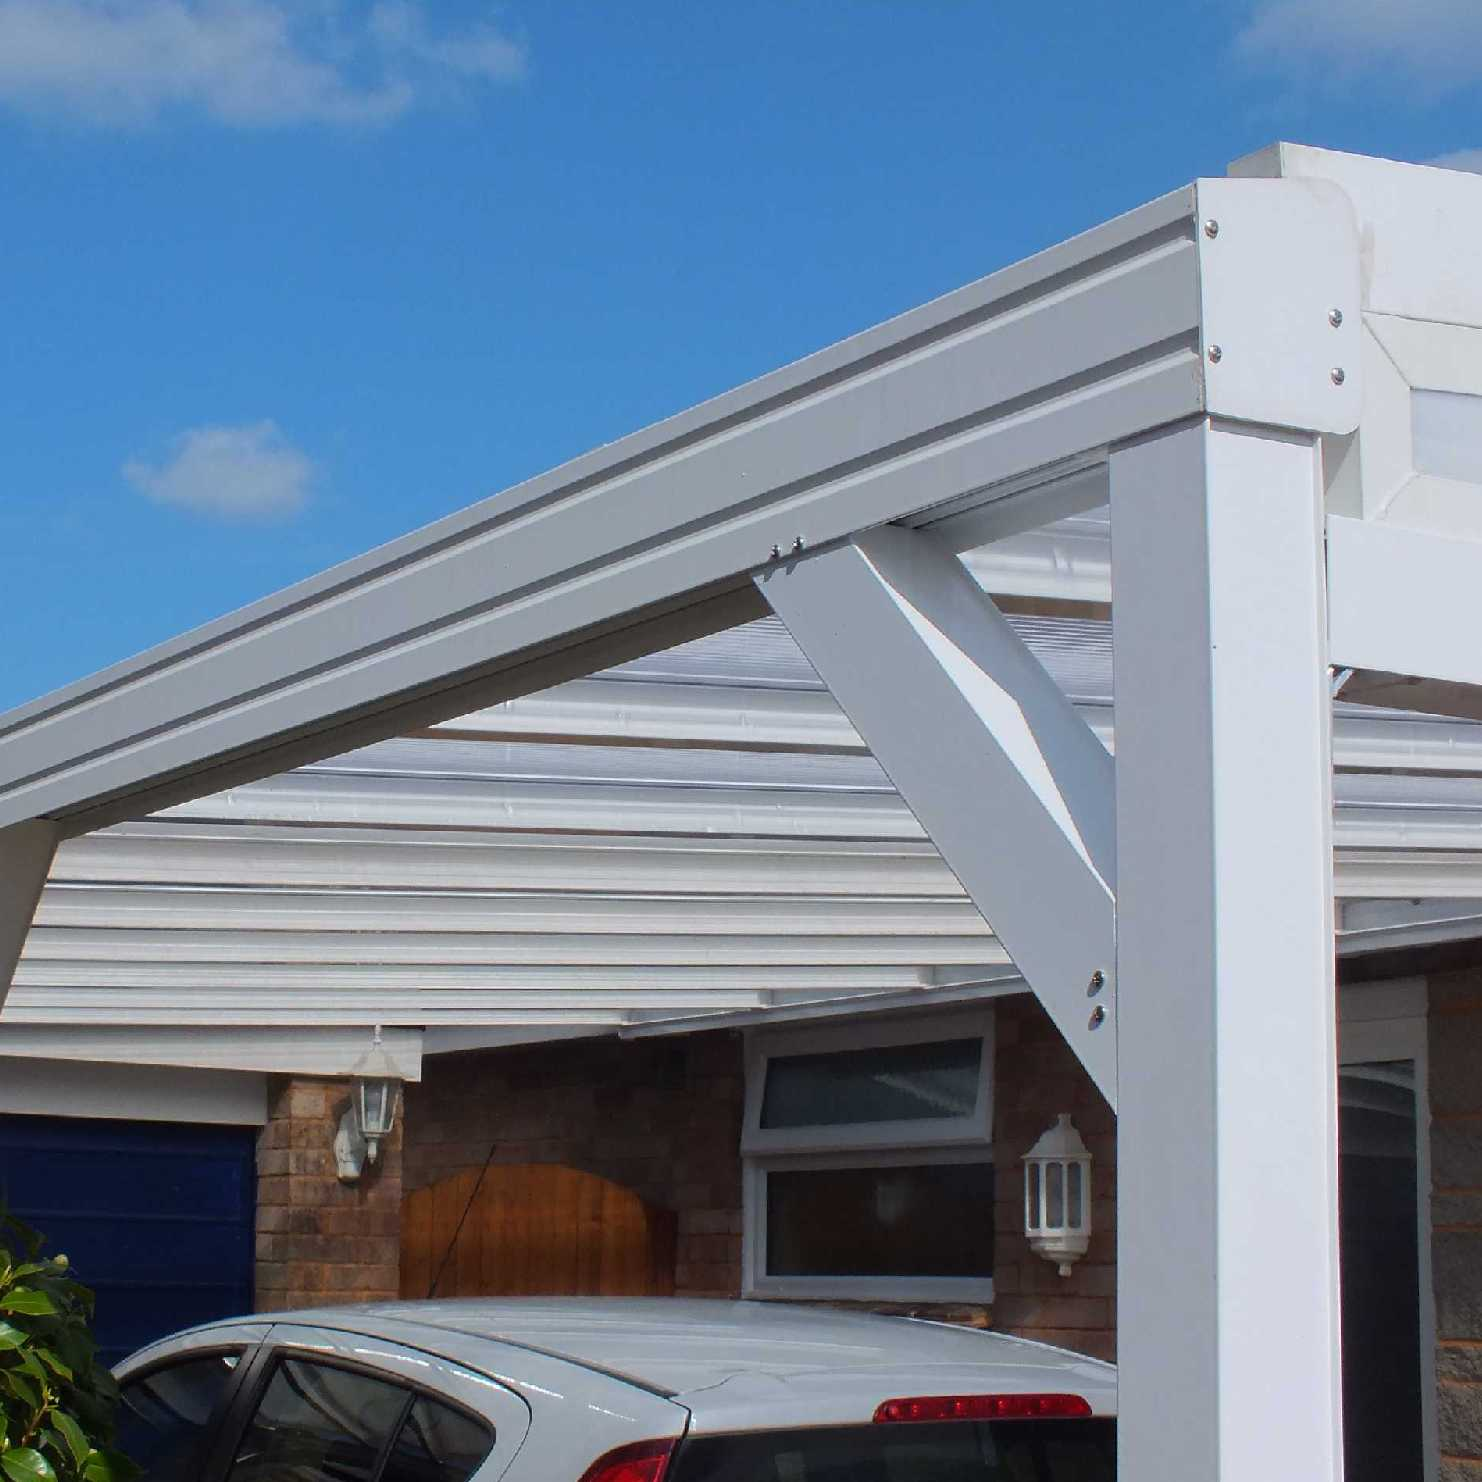 Great deals on Omega Smart Lean-To Canopy with 16mm Polycarbonate Glazing - 11.6m (W) x 1.5m (P), (5) Supporting Posts